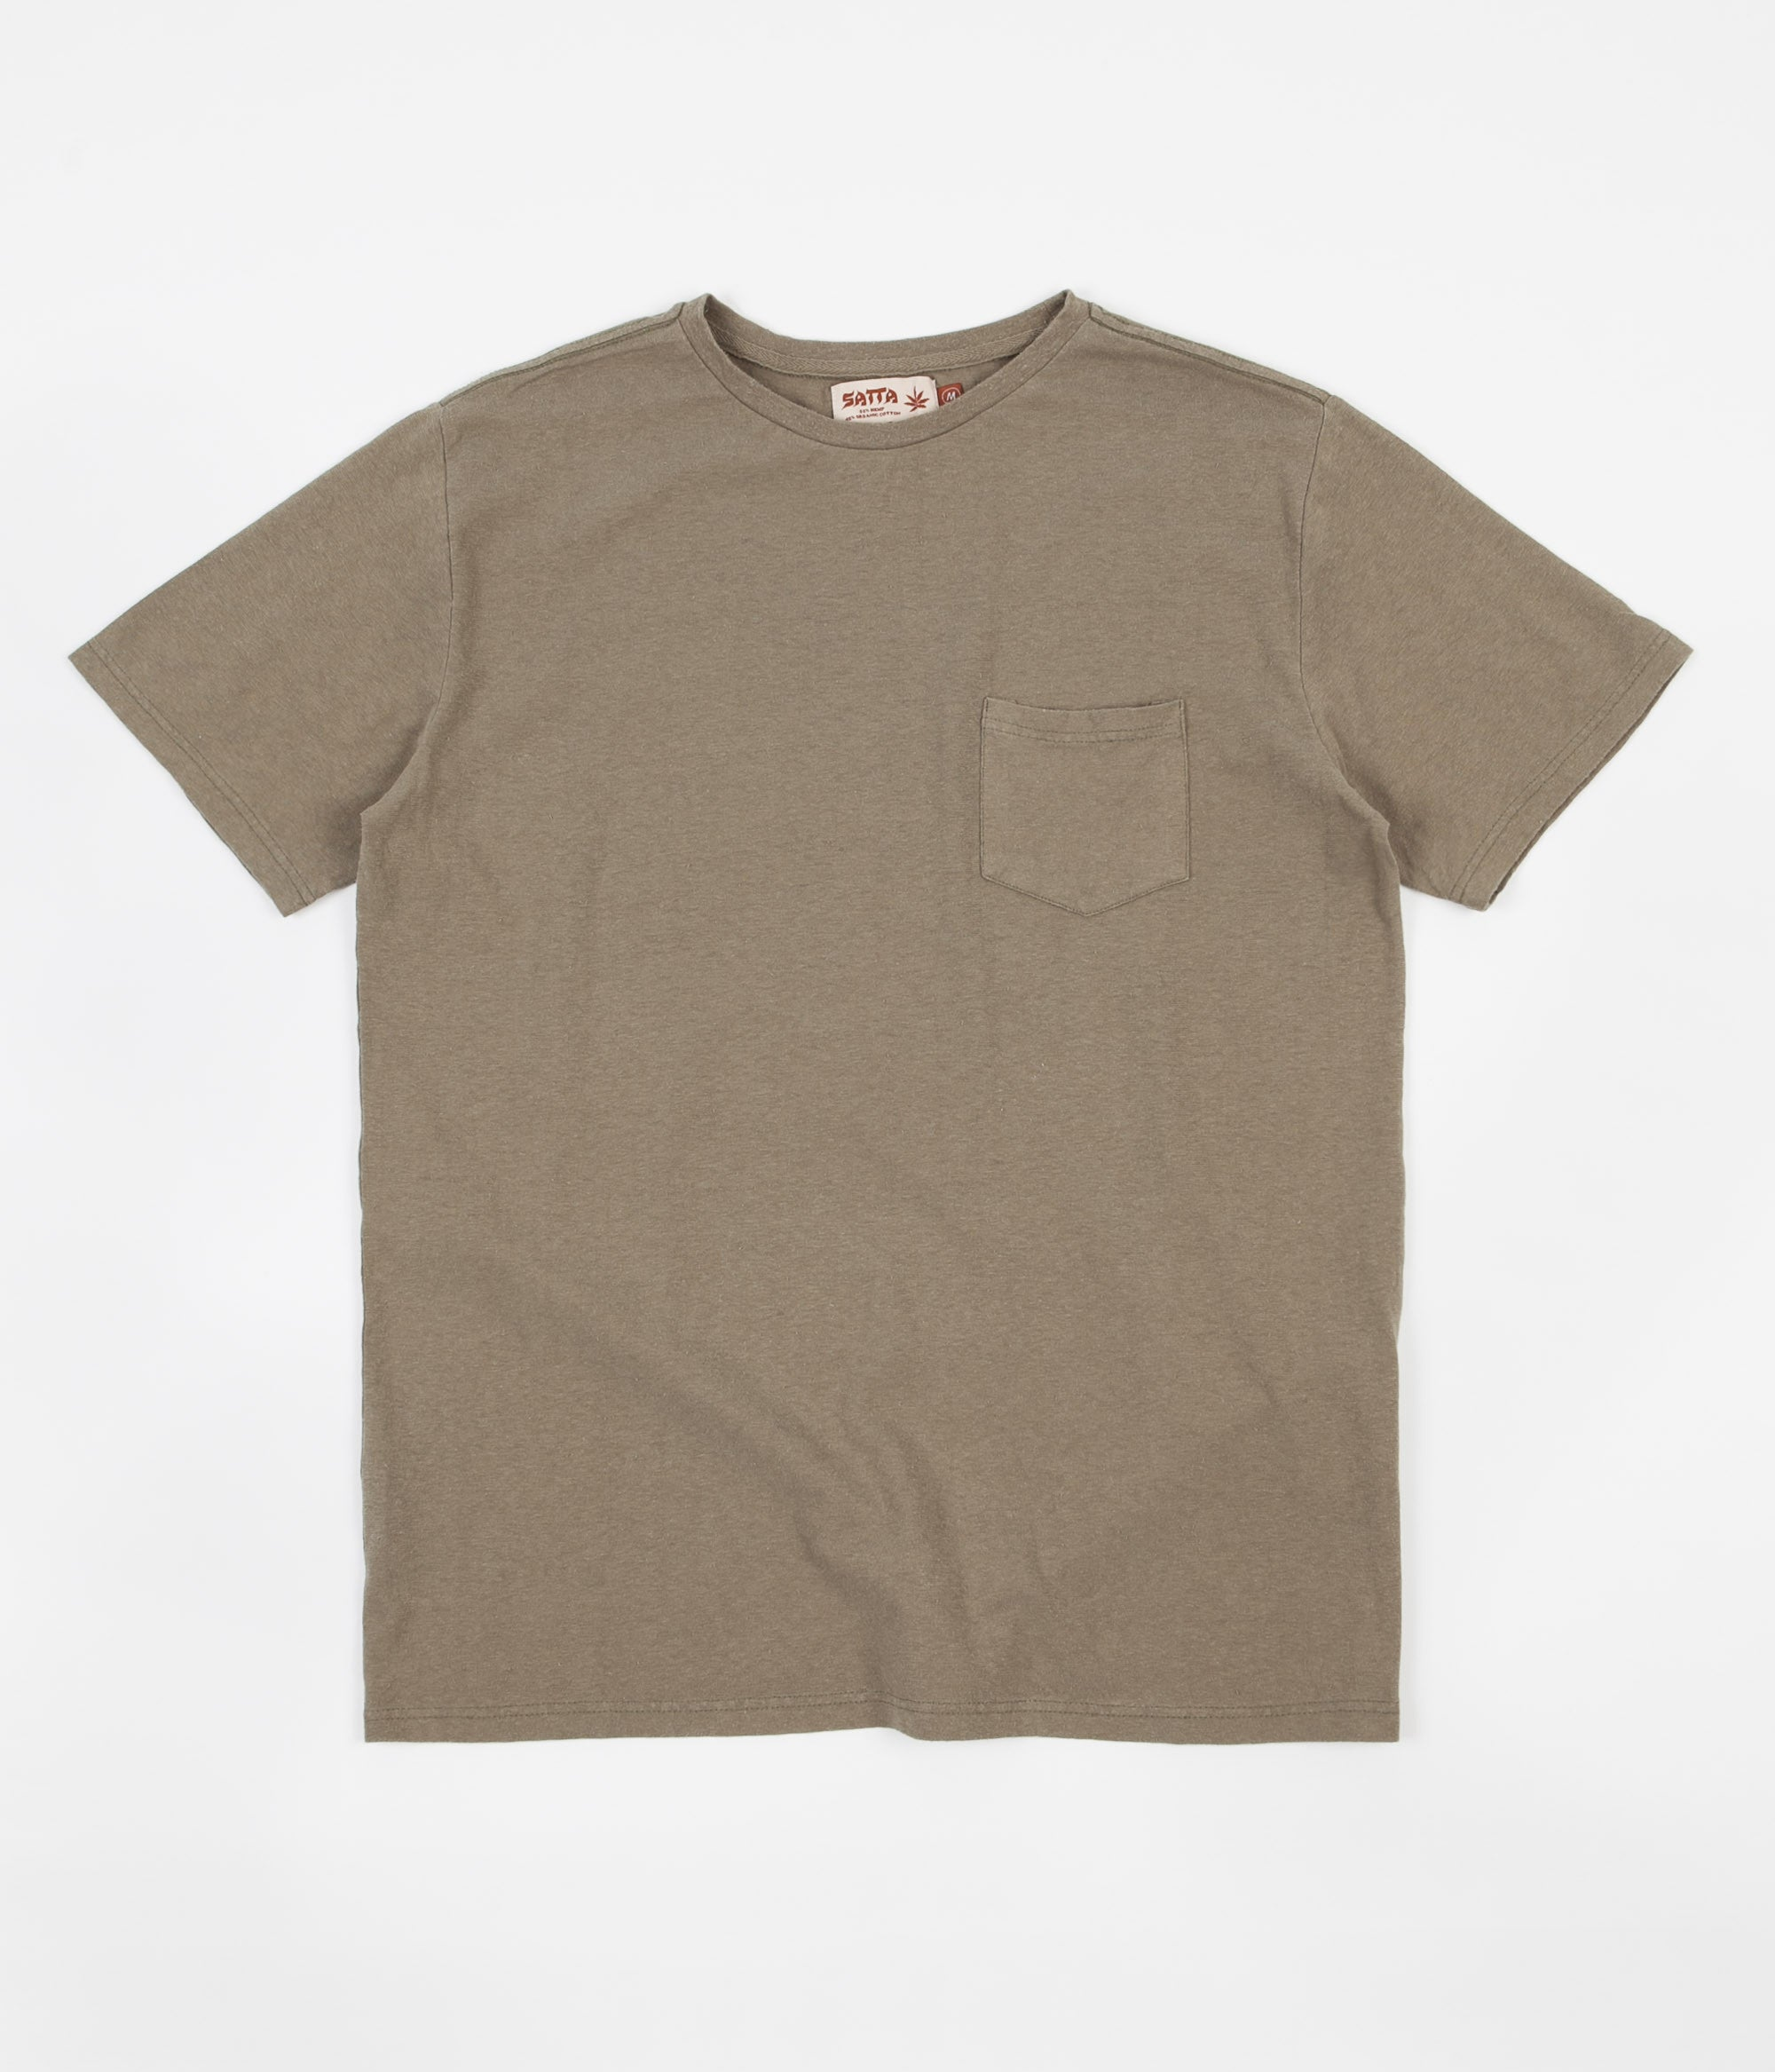 Satta Basic Hemp Pocket T-Shirt - Seafoam